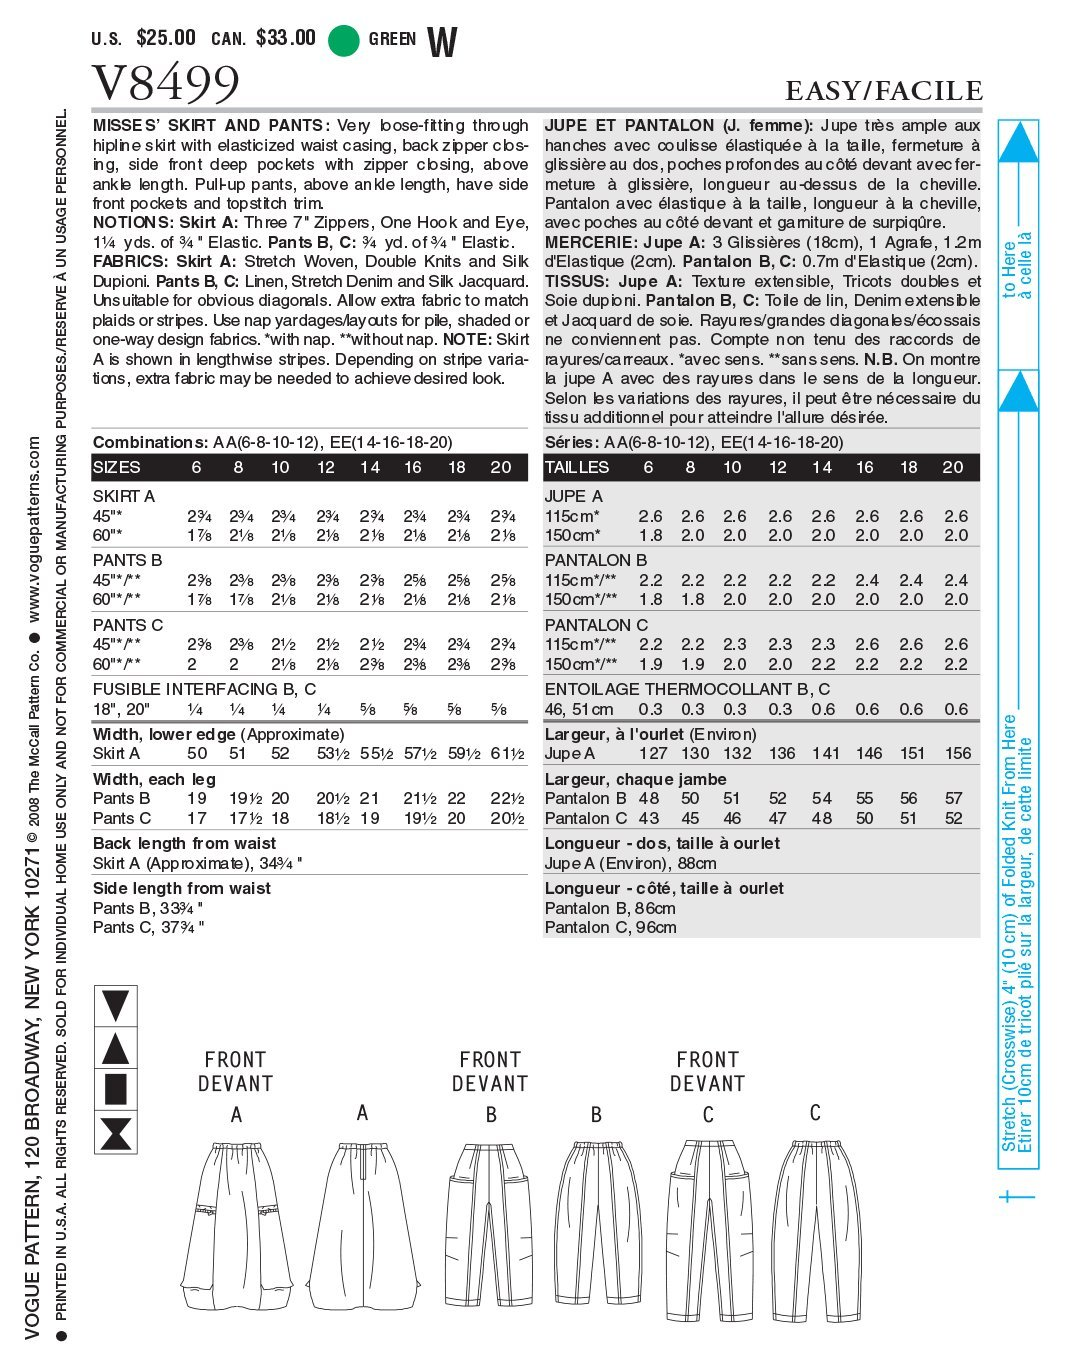 Vogue Patterns V8499 - Patrones de costura para faldas y pantalones ...